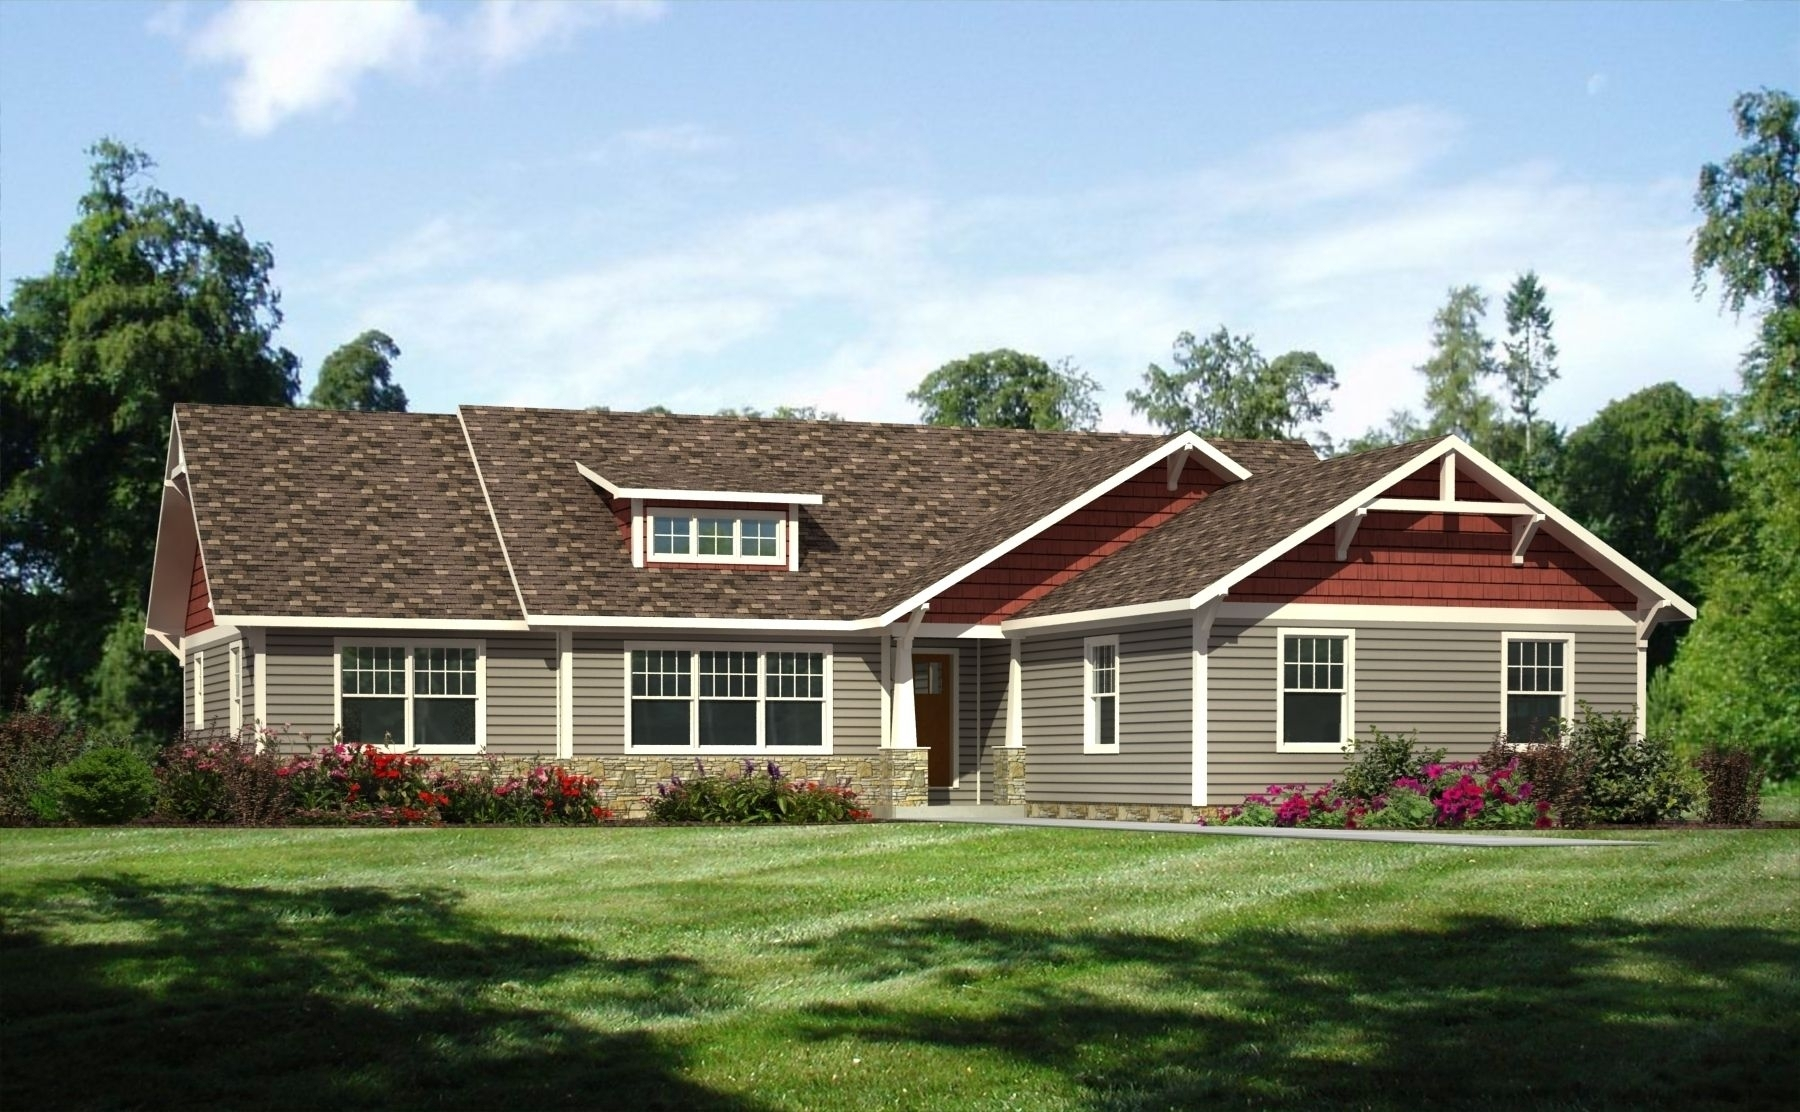 landscaping-ideas-for-brick-ranch-style-homes.jpg